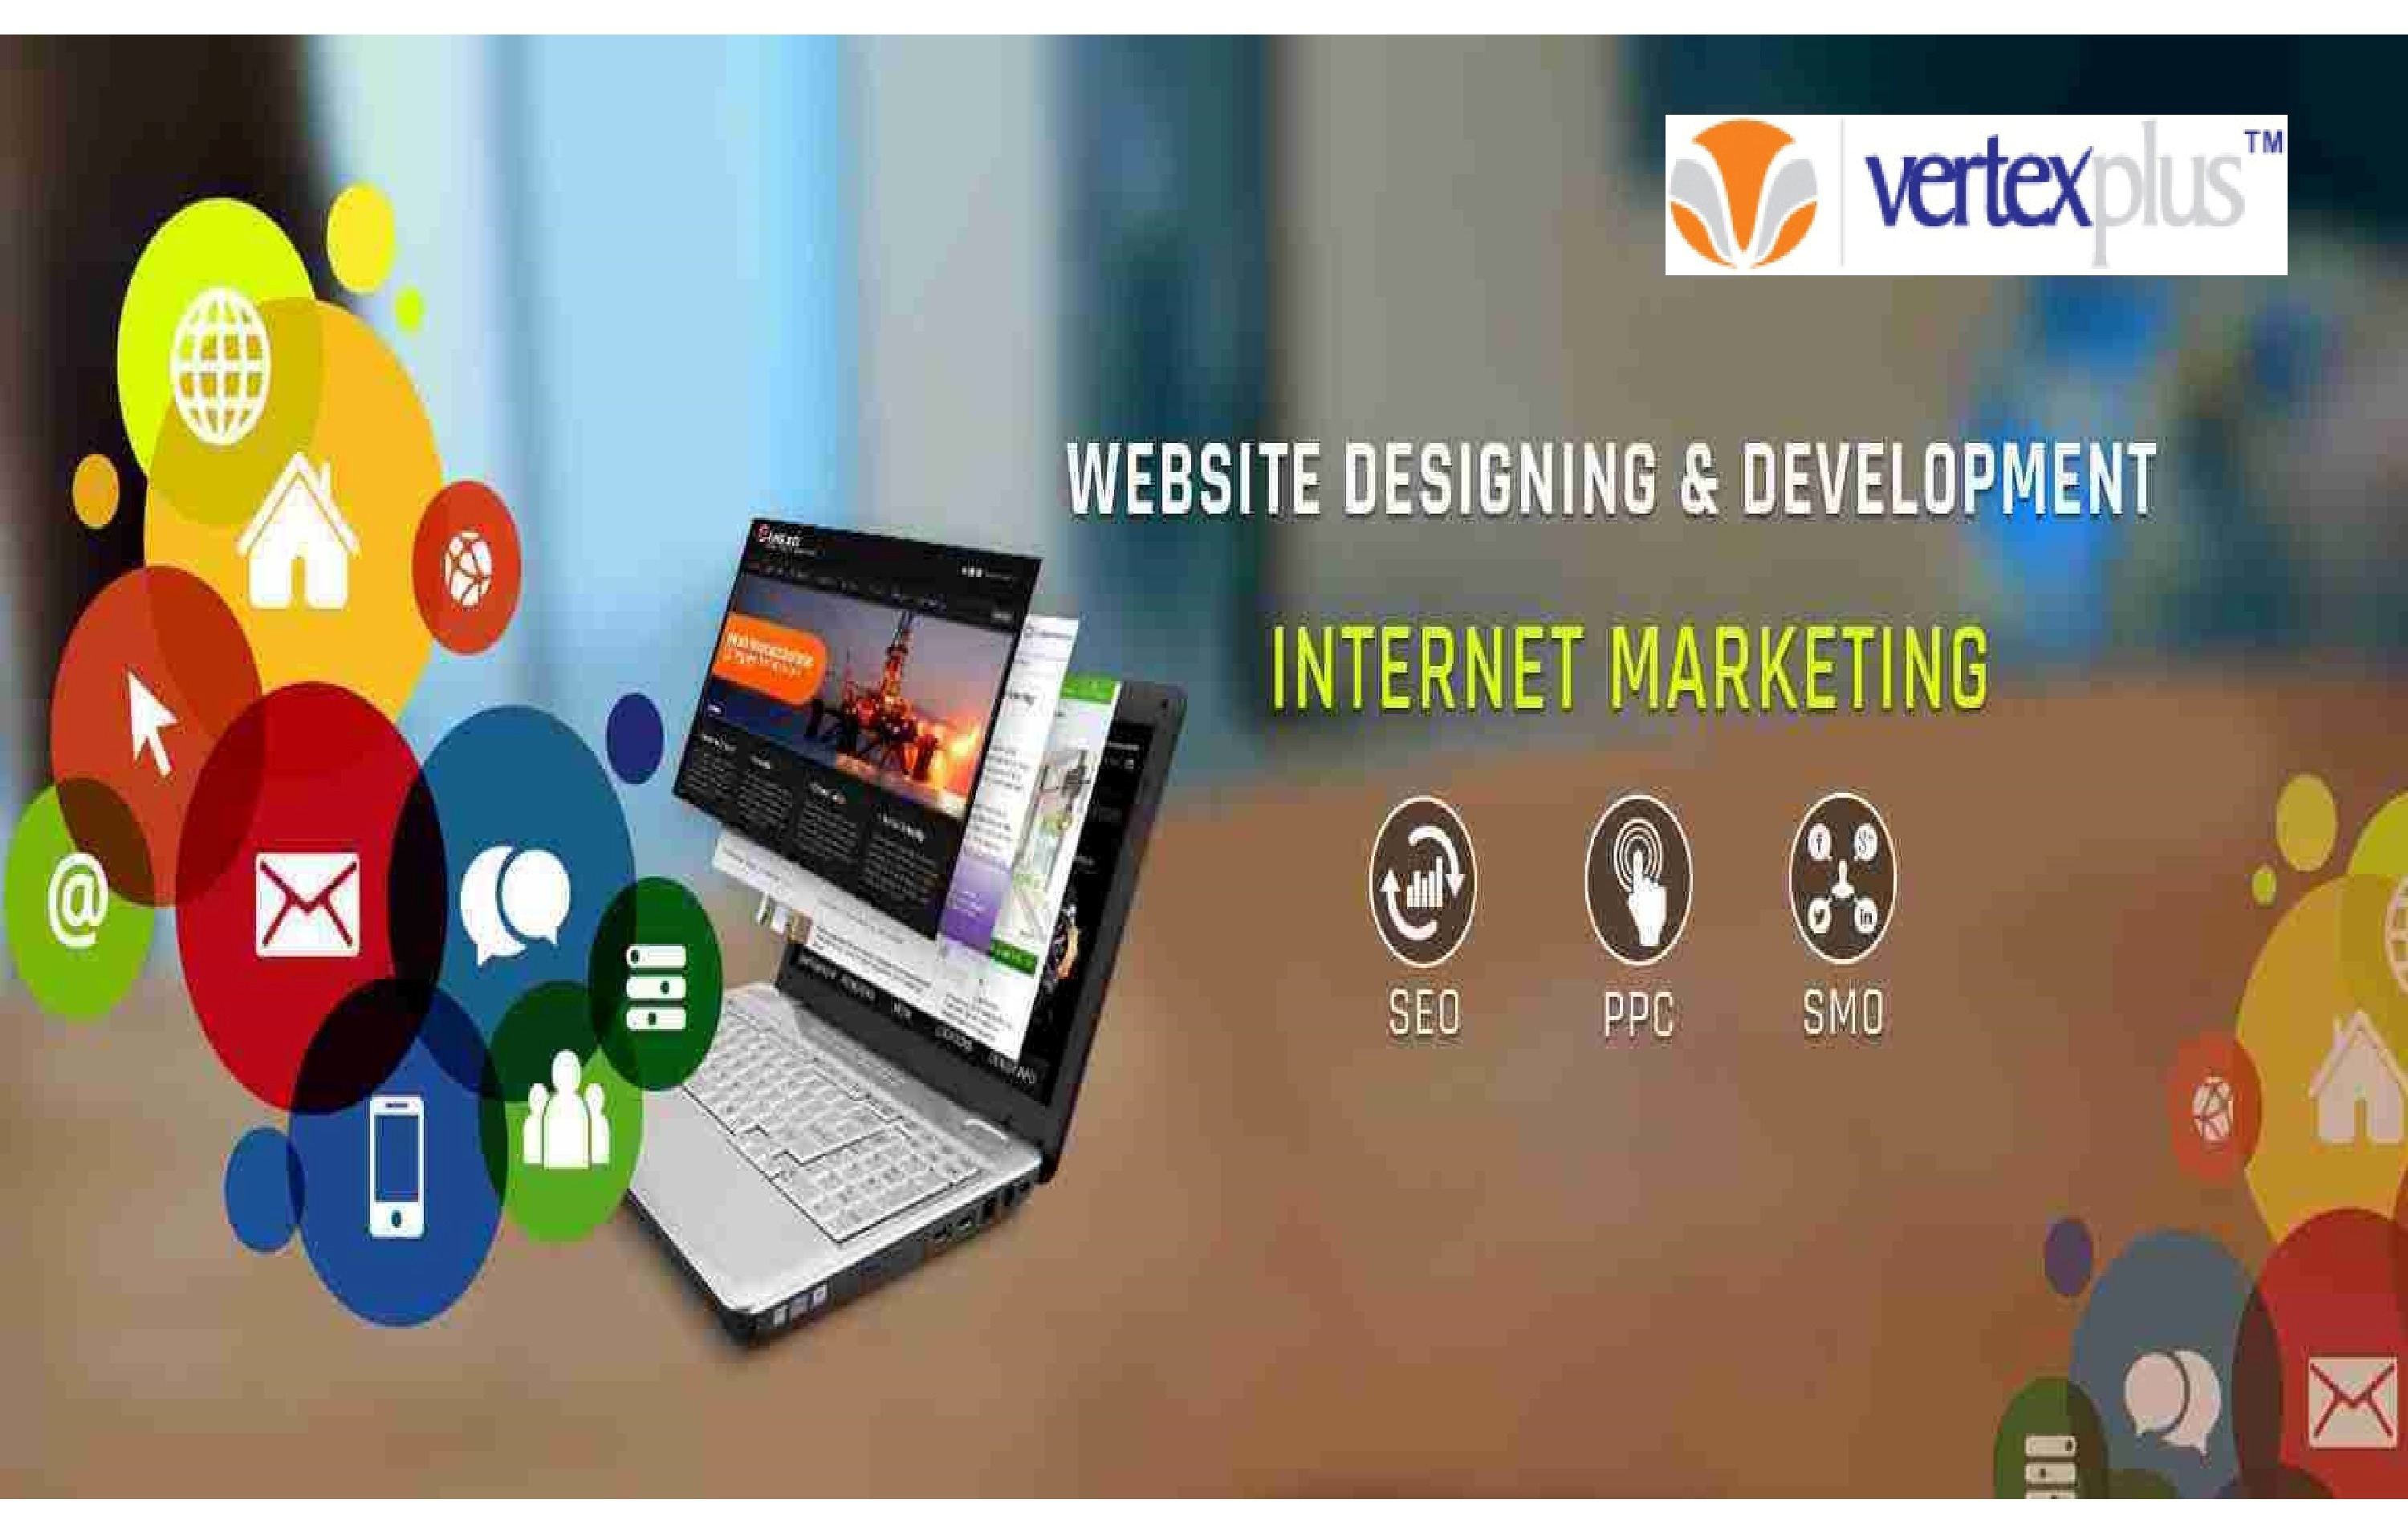 Website Development Company.jpg The wide range of web development solutions offered by Vertexplus includes mainstream web development along with open source technology. More information, you can get http://www.vertexplus.com/website-development.  by vertexplus